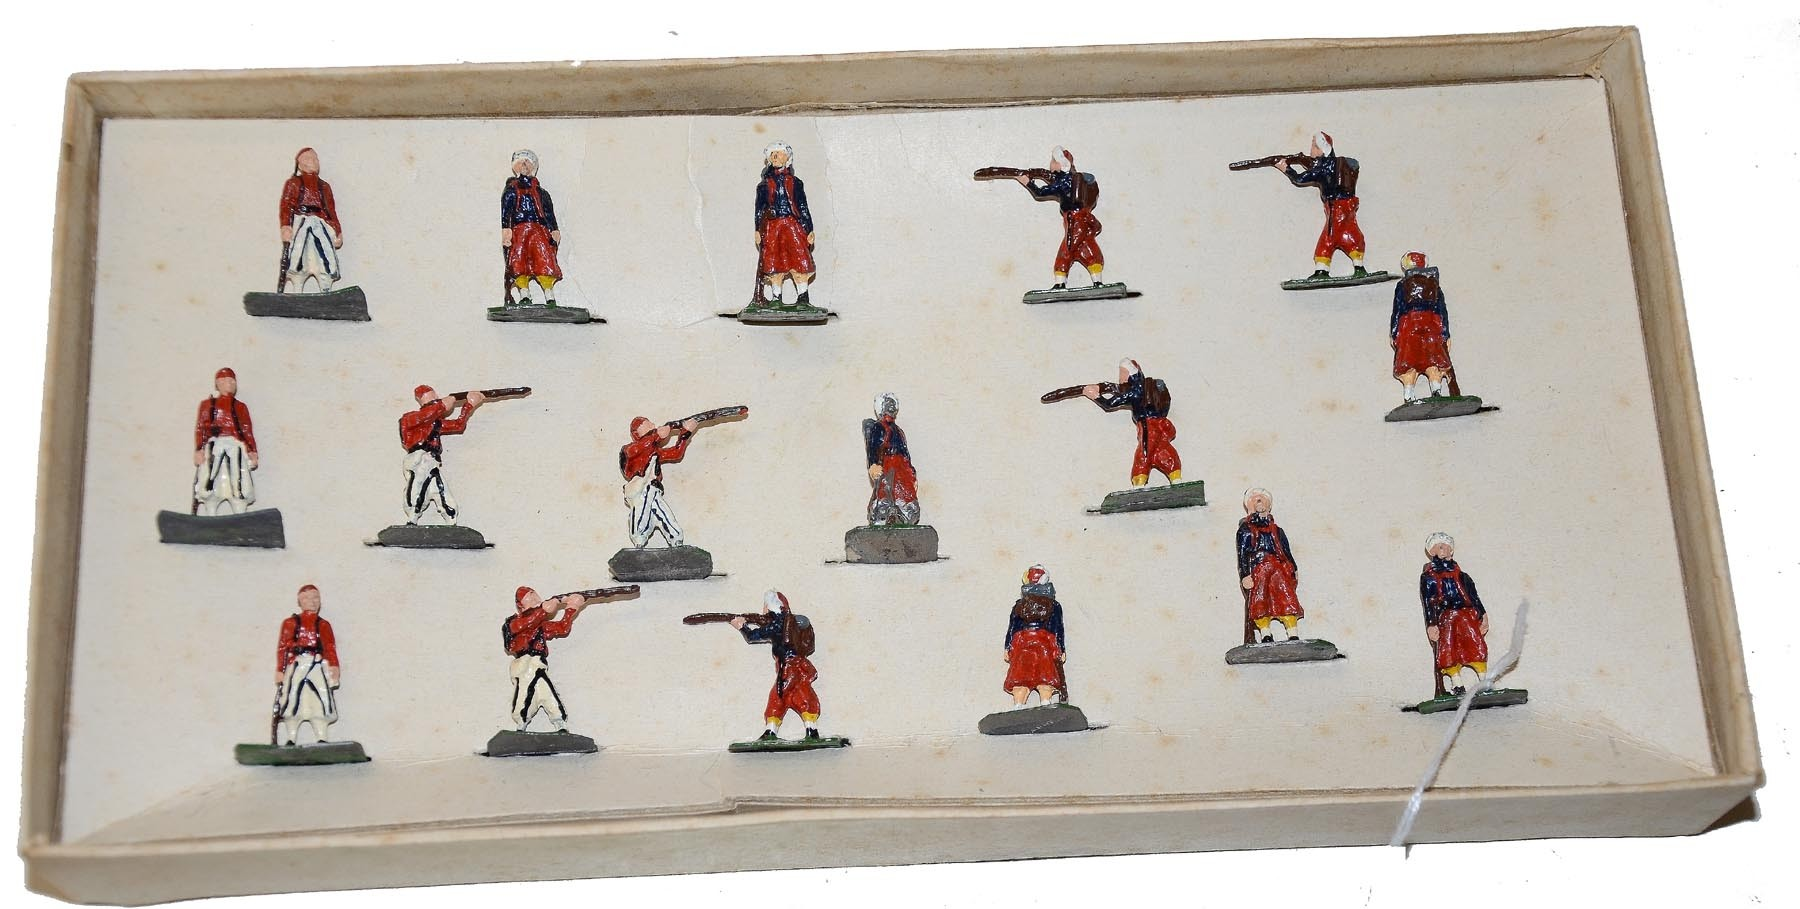 COMPLETE SET OF SAE HANDPAINTED FIGURES FROM THE 1950'S/60'S IN THE ORIGINAL BOX-UNION & CONFEDERATE ZOUAVES